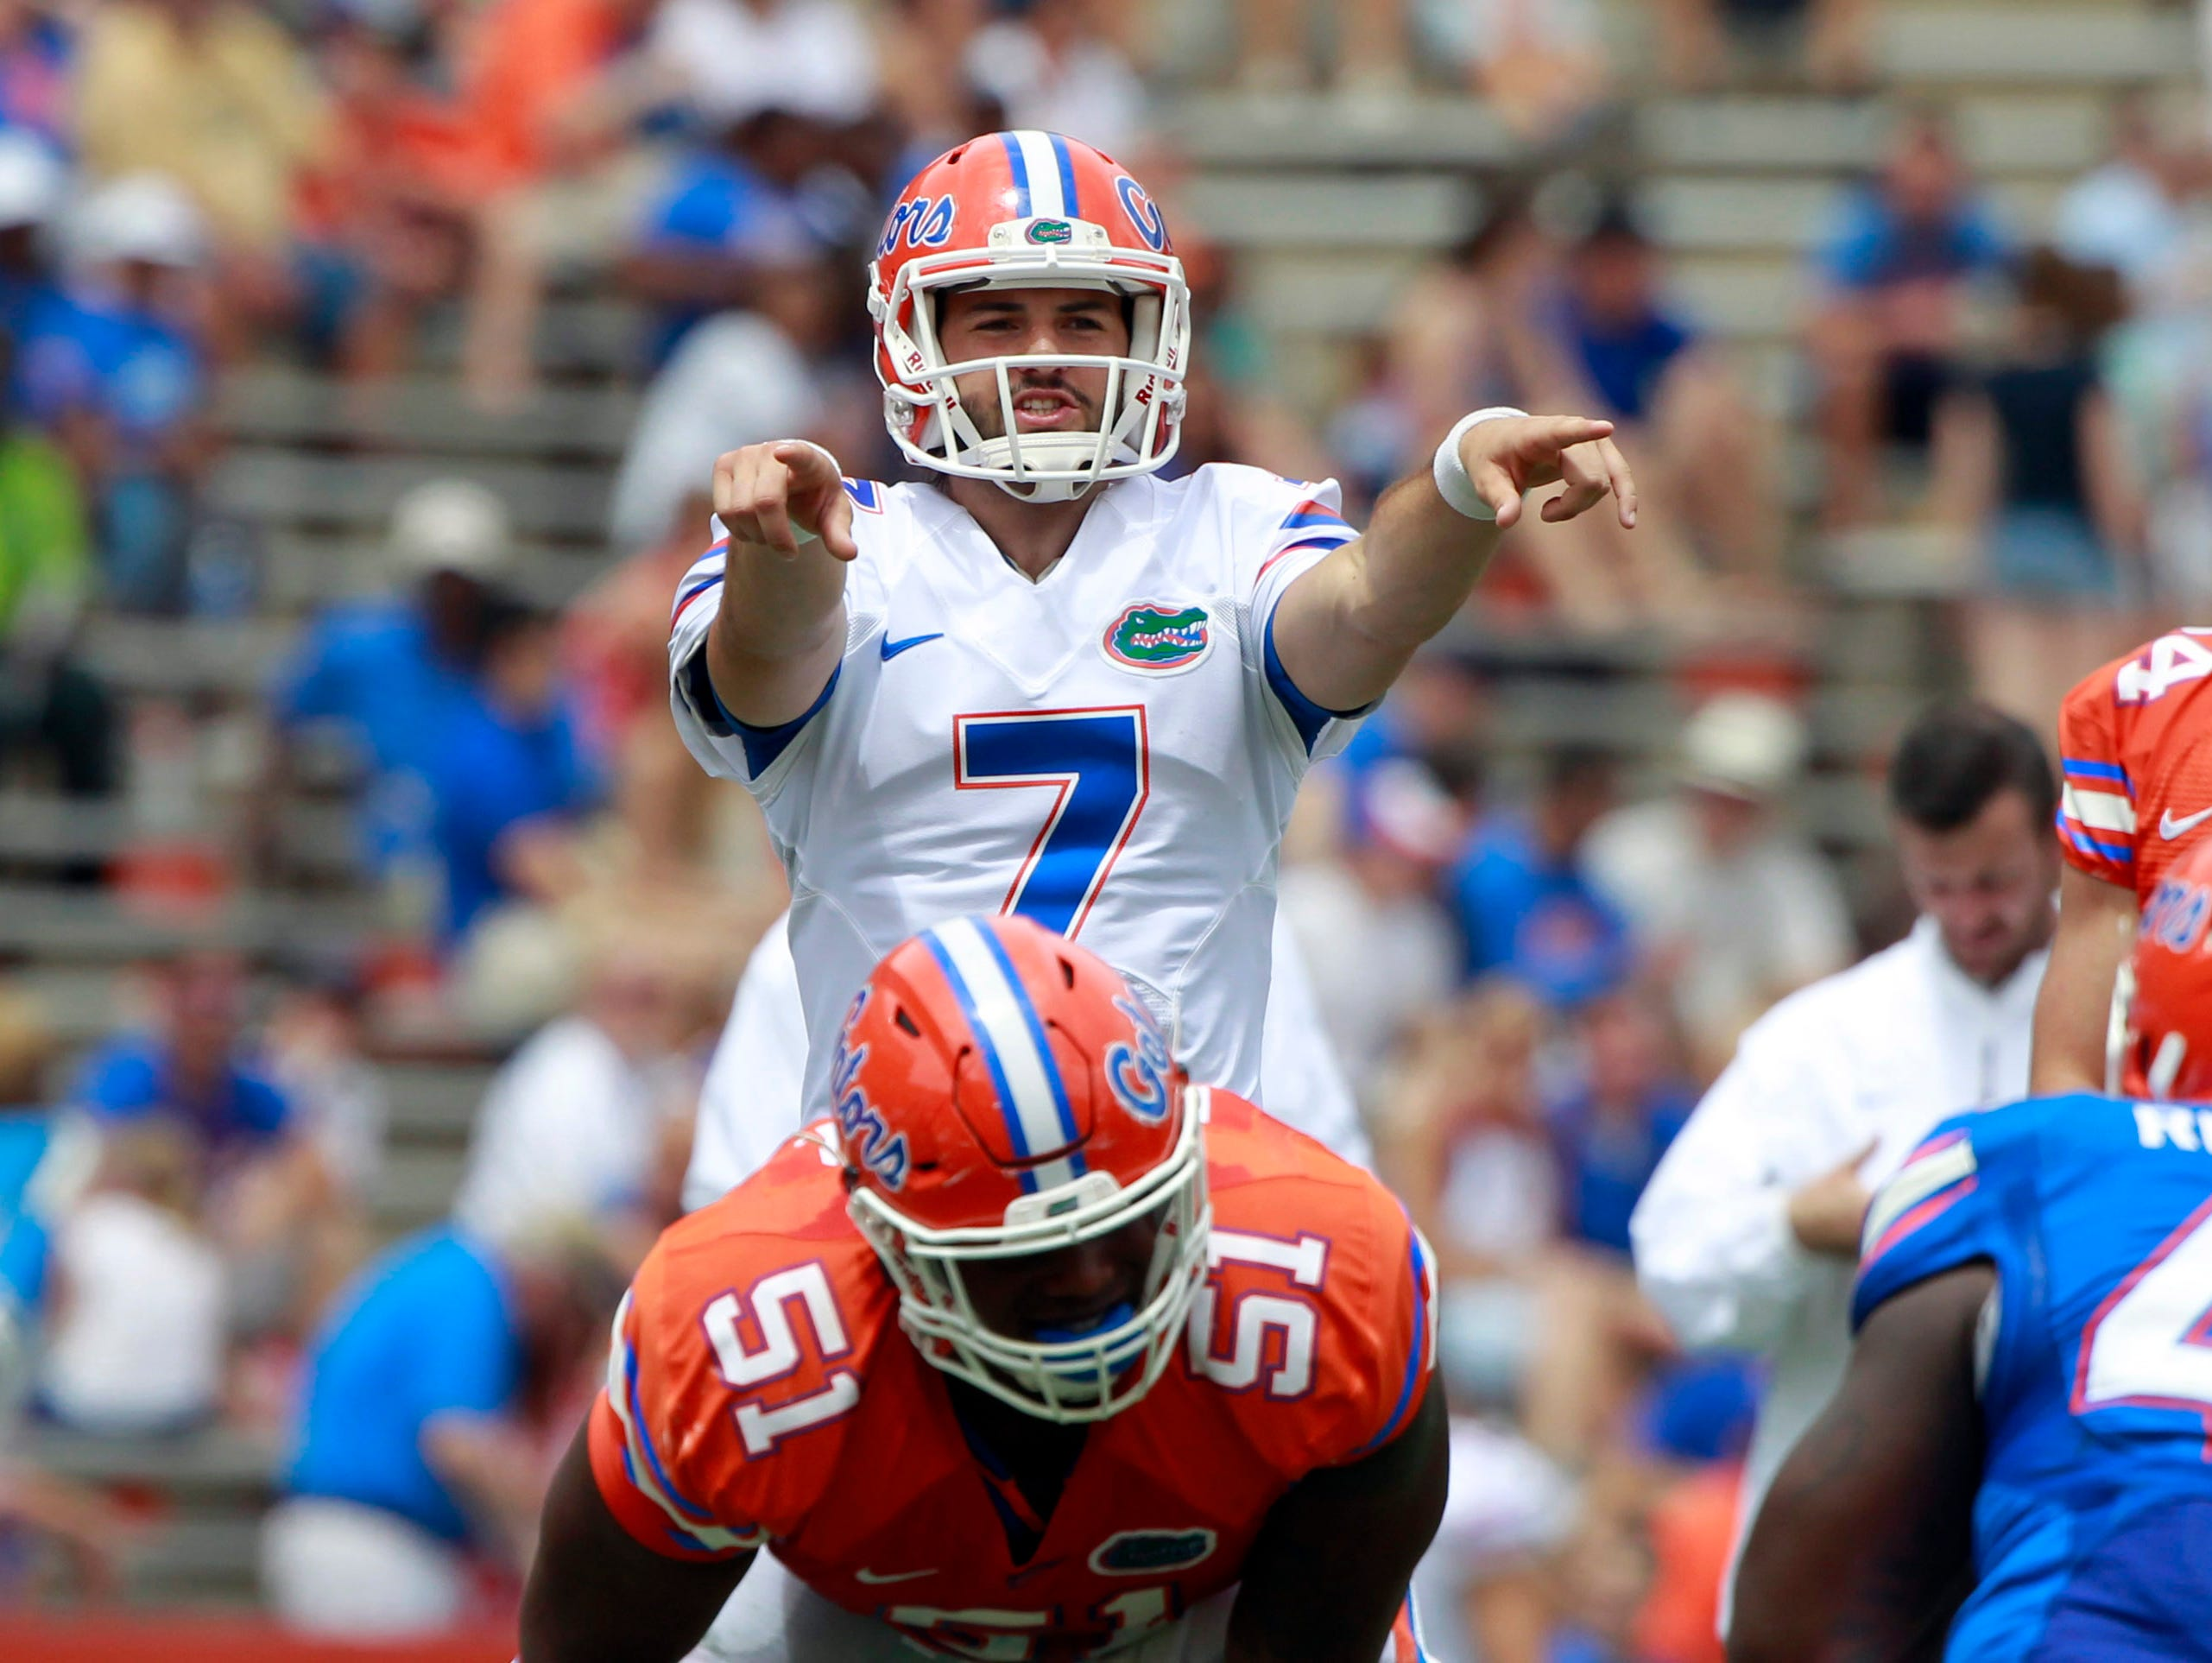 Florida Gators quarterback Will Grier (7) is in the running to be the team's starter this fall.